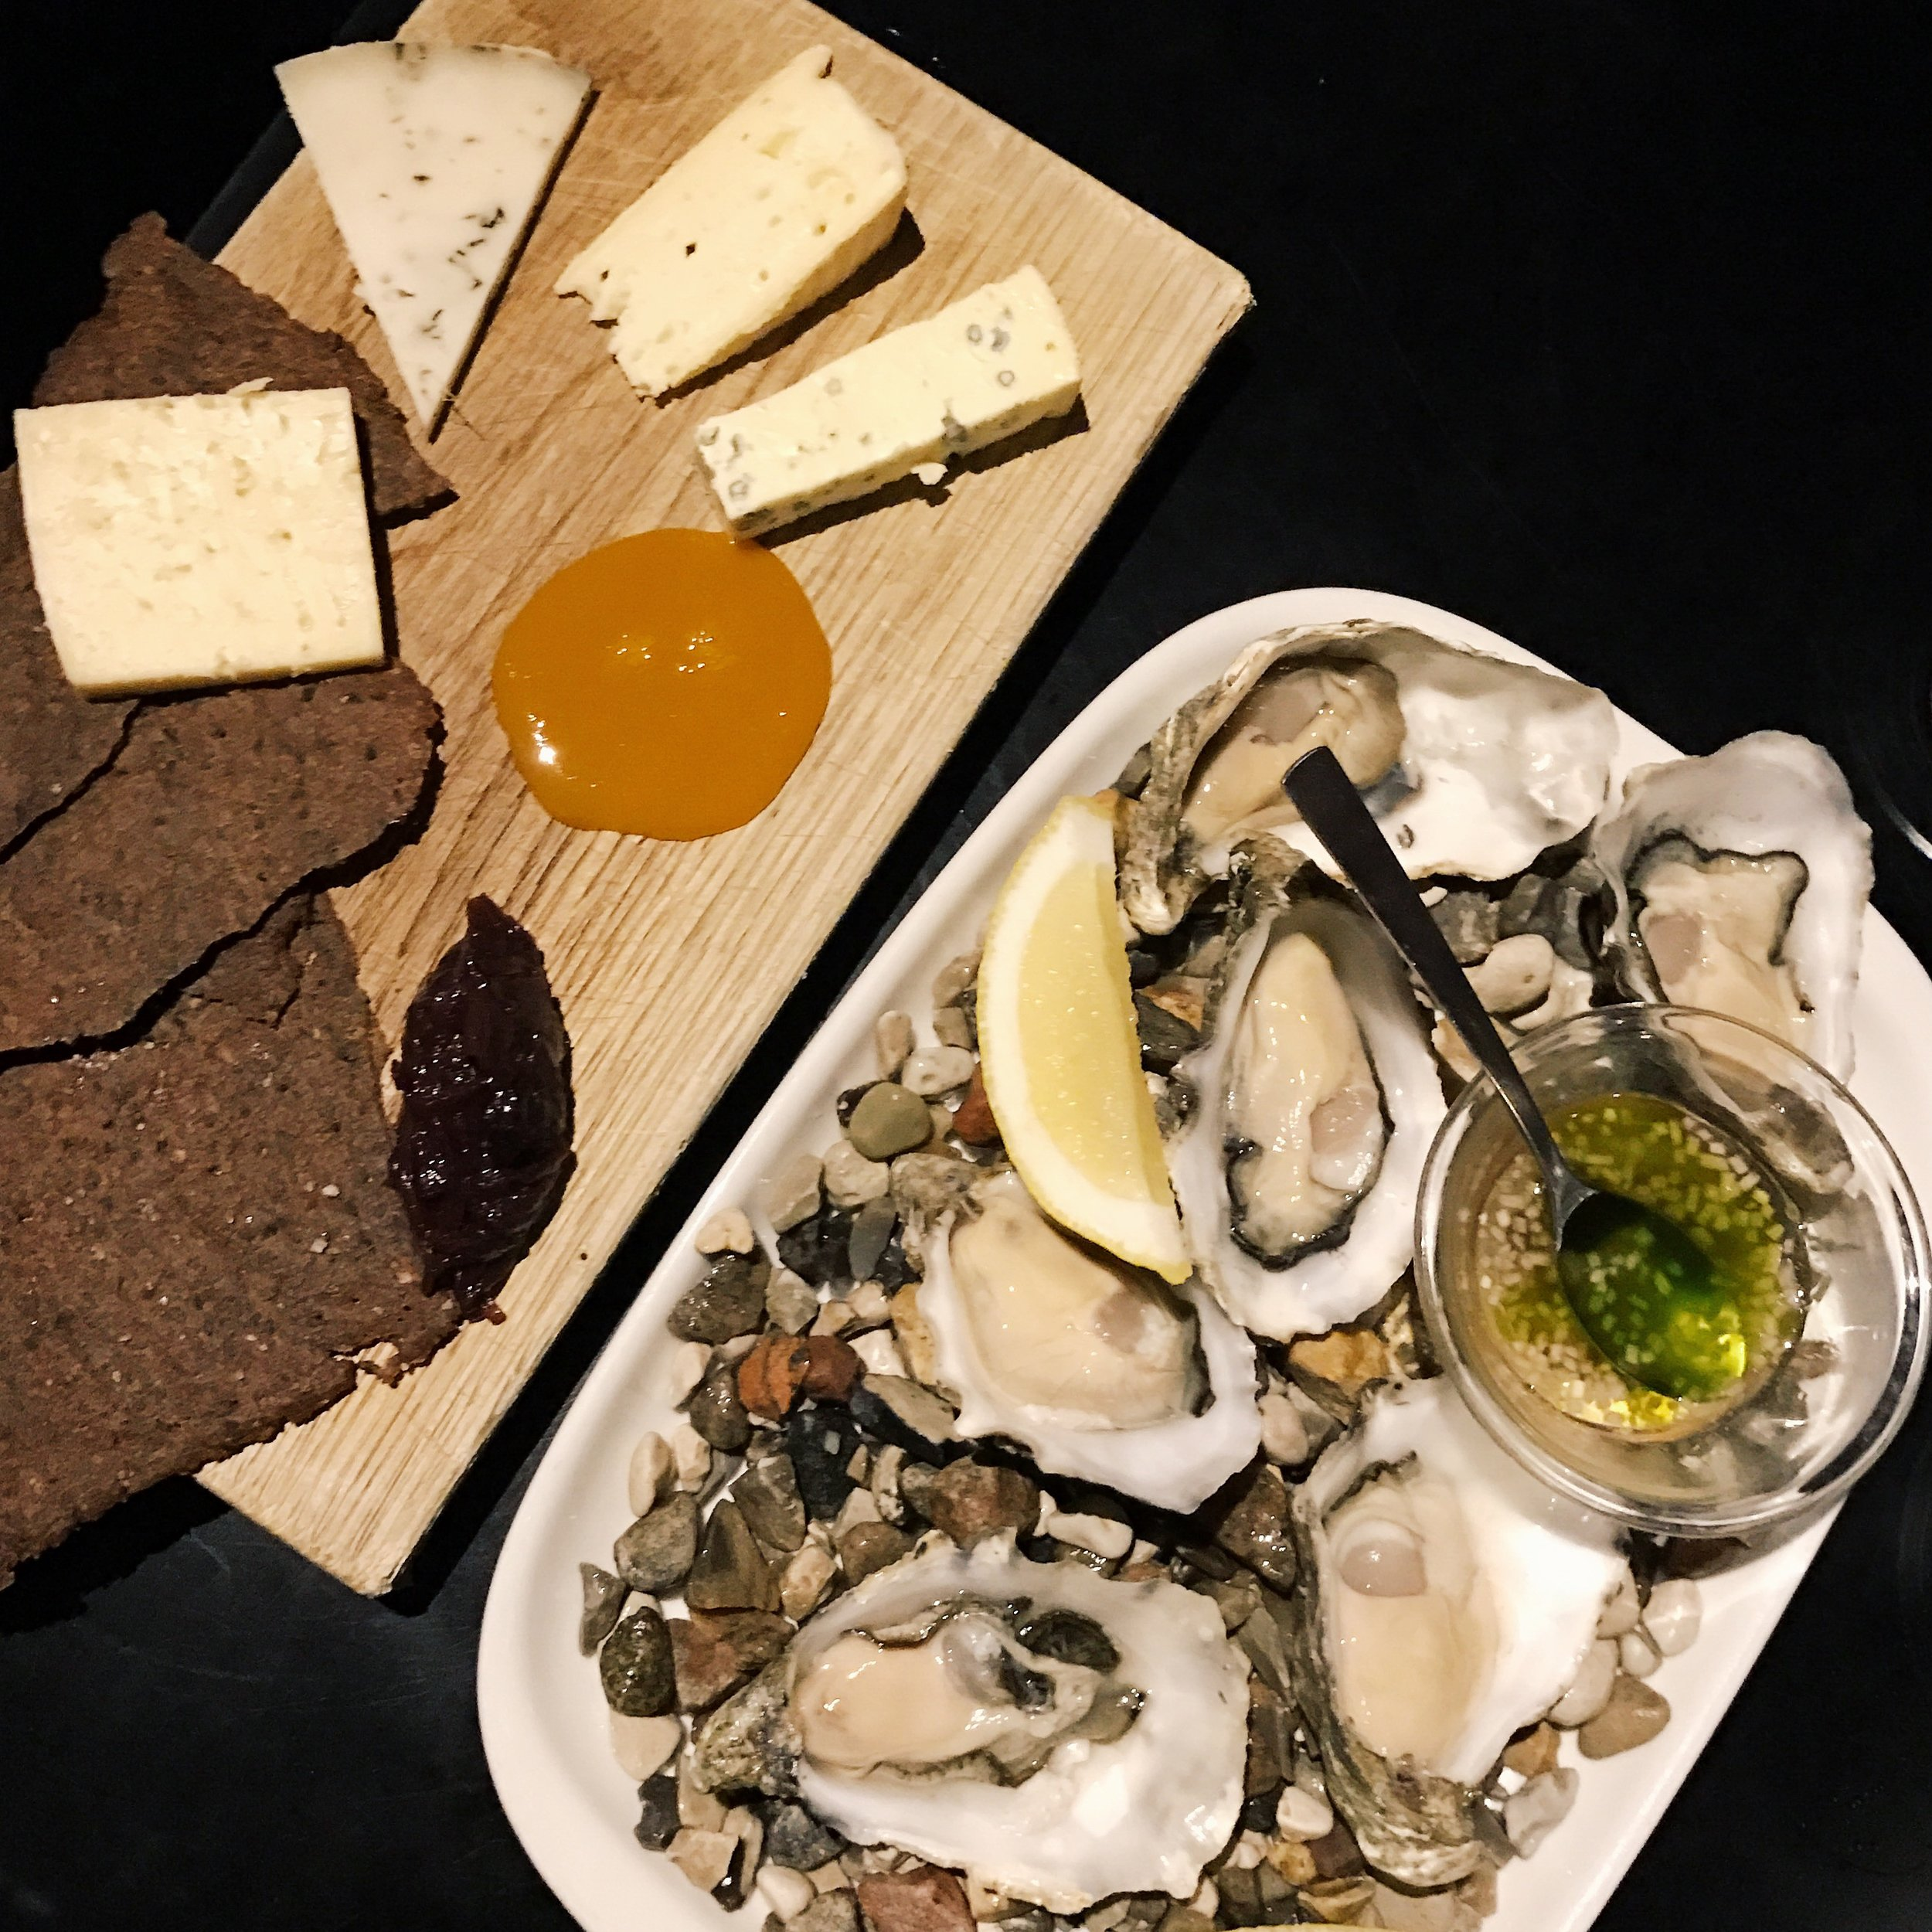 Oysters and Nordic cheeses